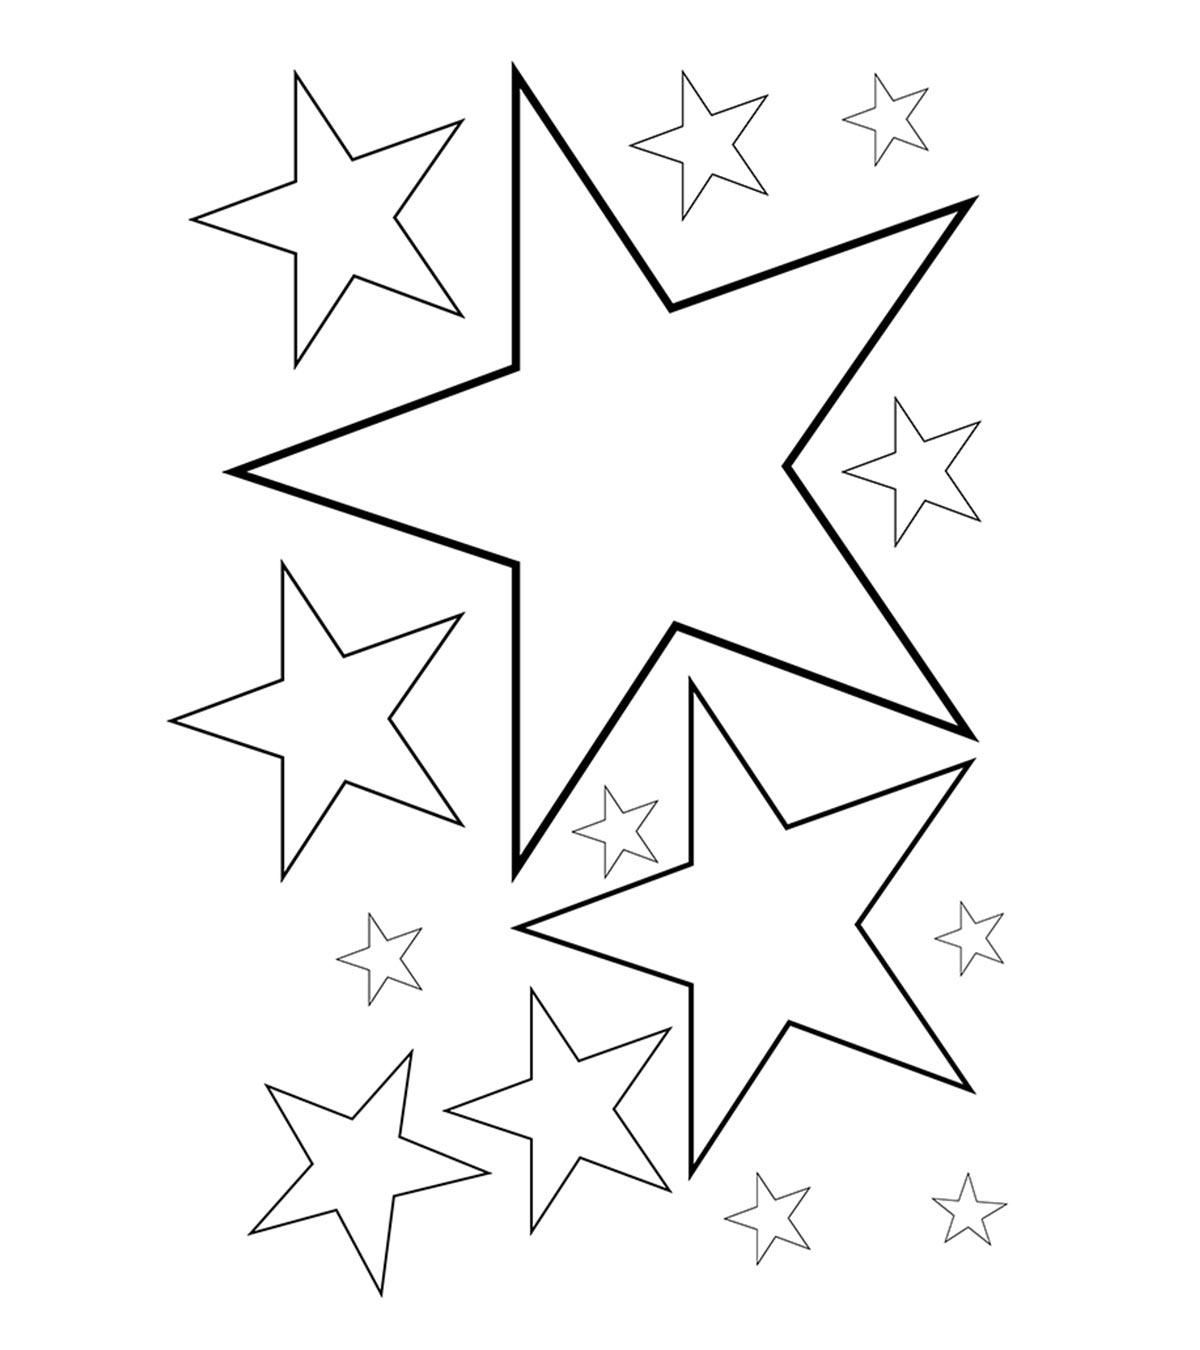 16 Coloring Page Stars Moon Coloring Pages Star Coloring Pages Flower Coloring Pages